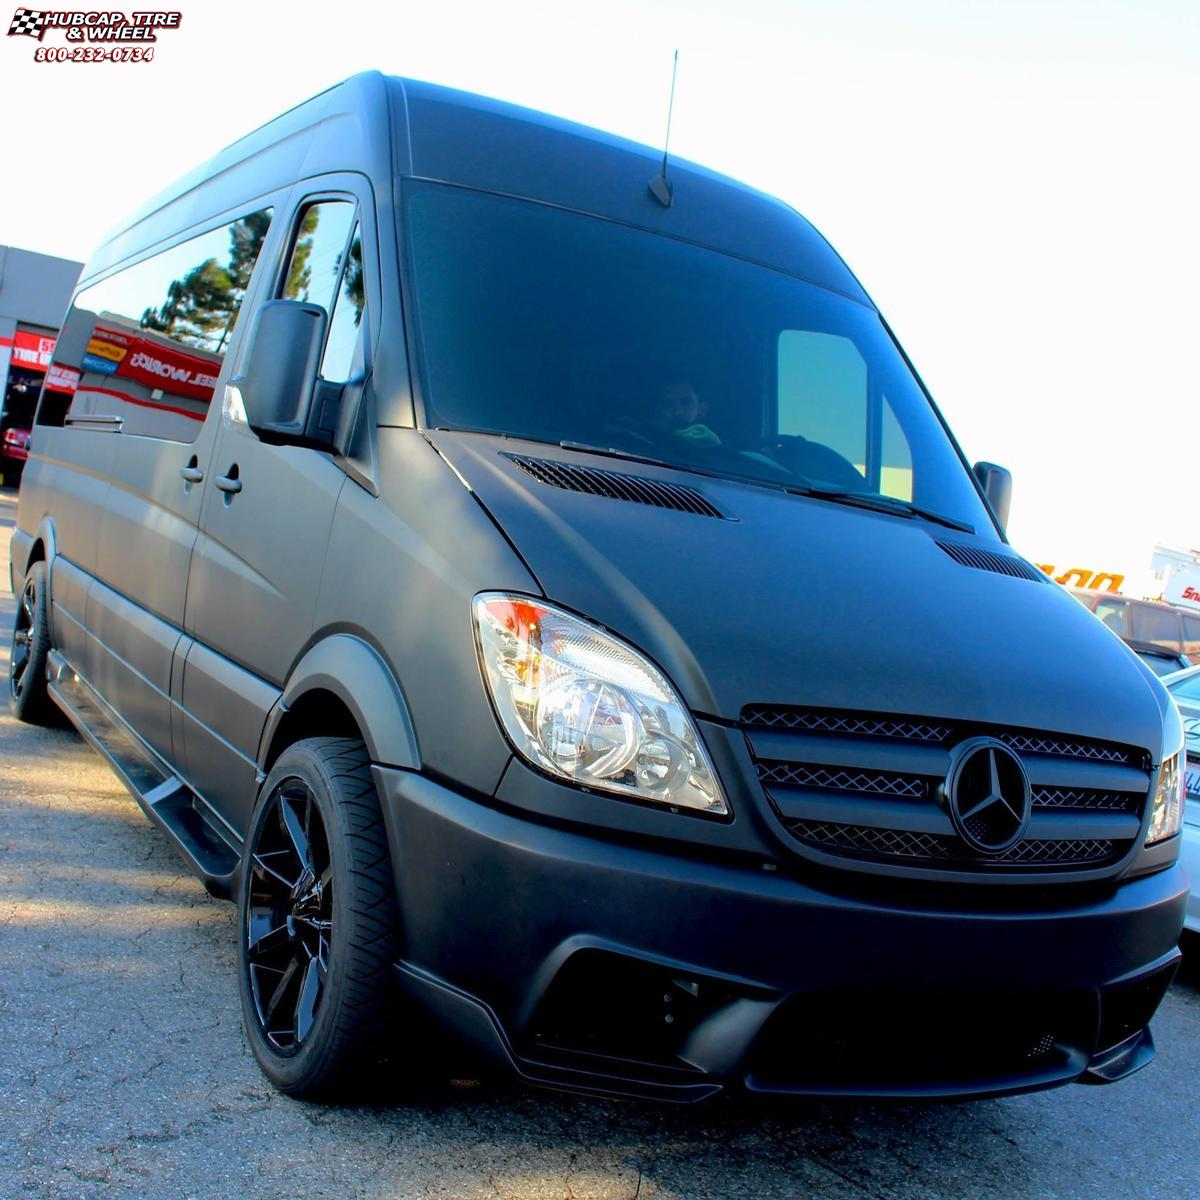 2014 mercedes benz sprinter 3500 kmc km651 slide wheels for Mercedes benz 3500 sprinter